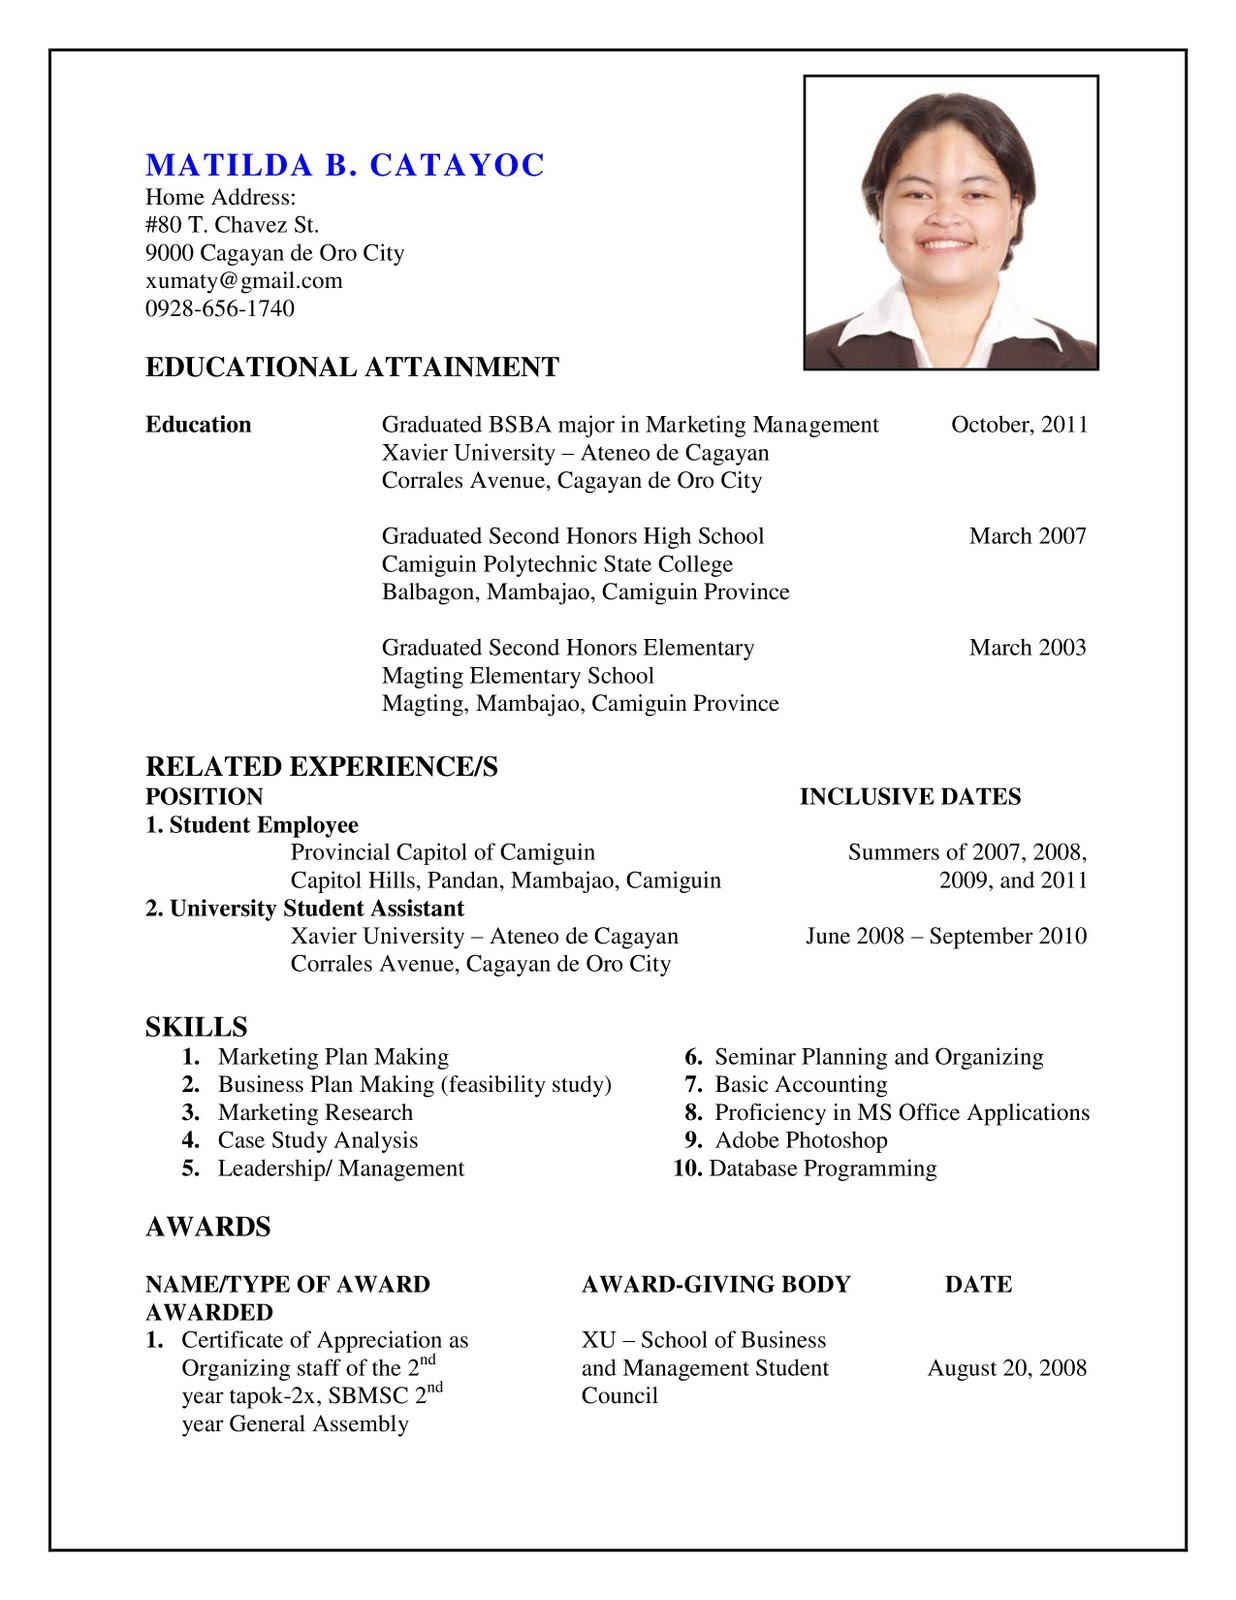 Resume Template How To Make A Pdf Resumes How To Make A Pdf ... how ...